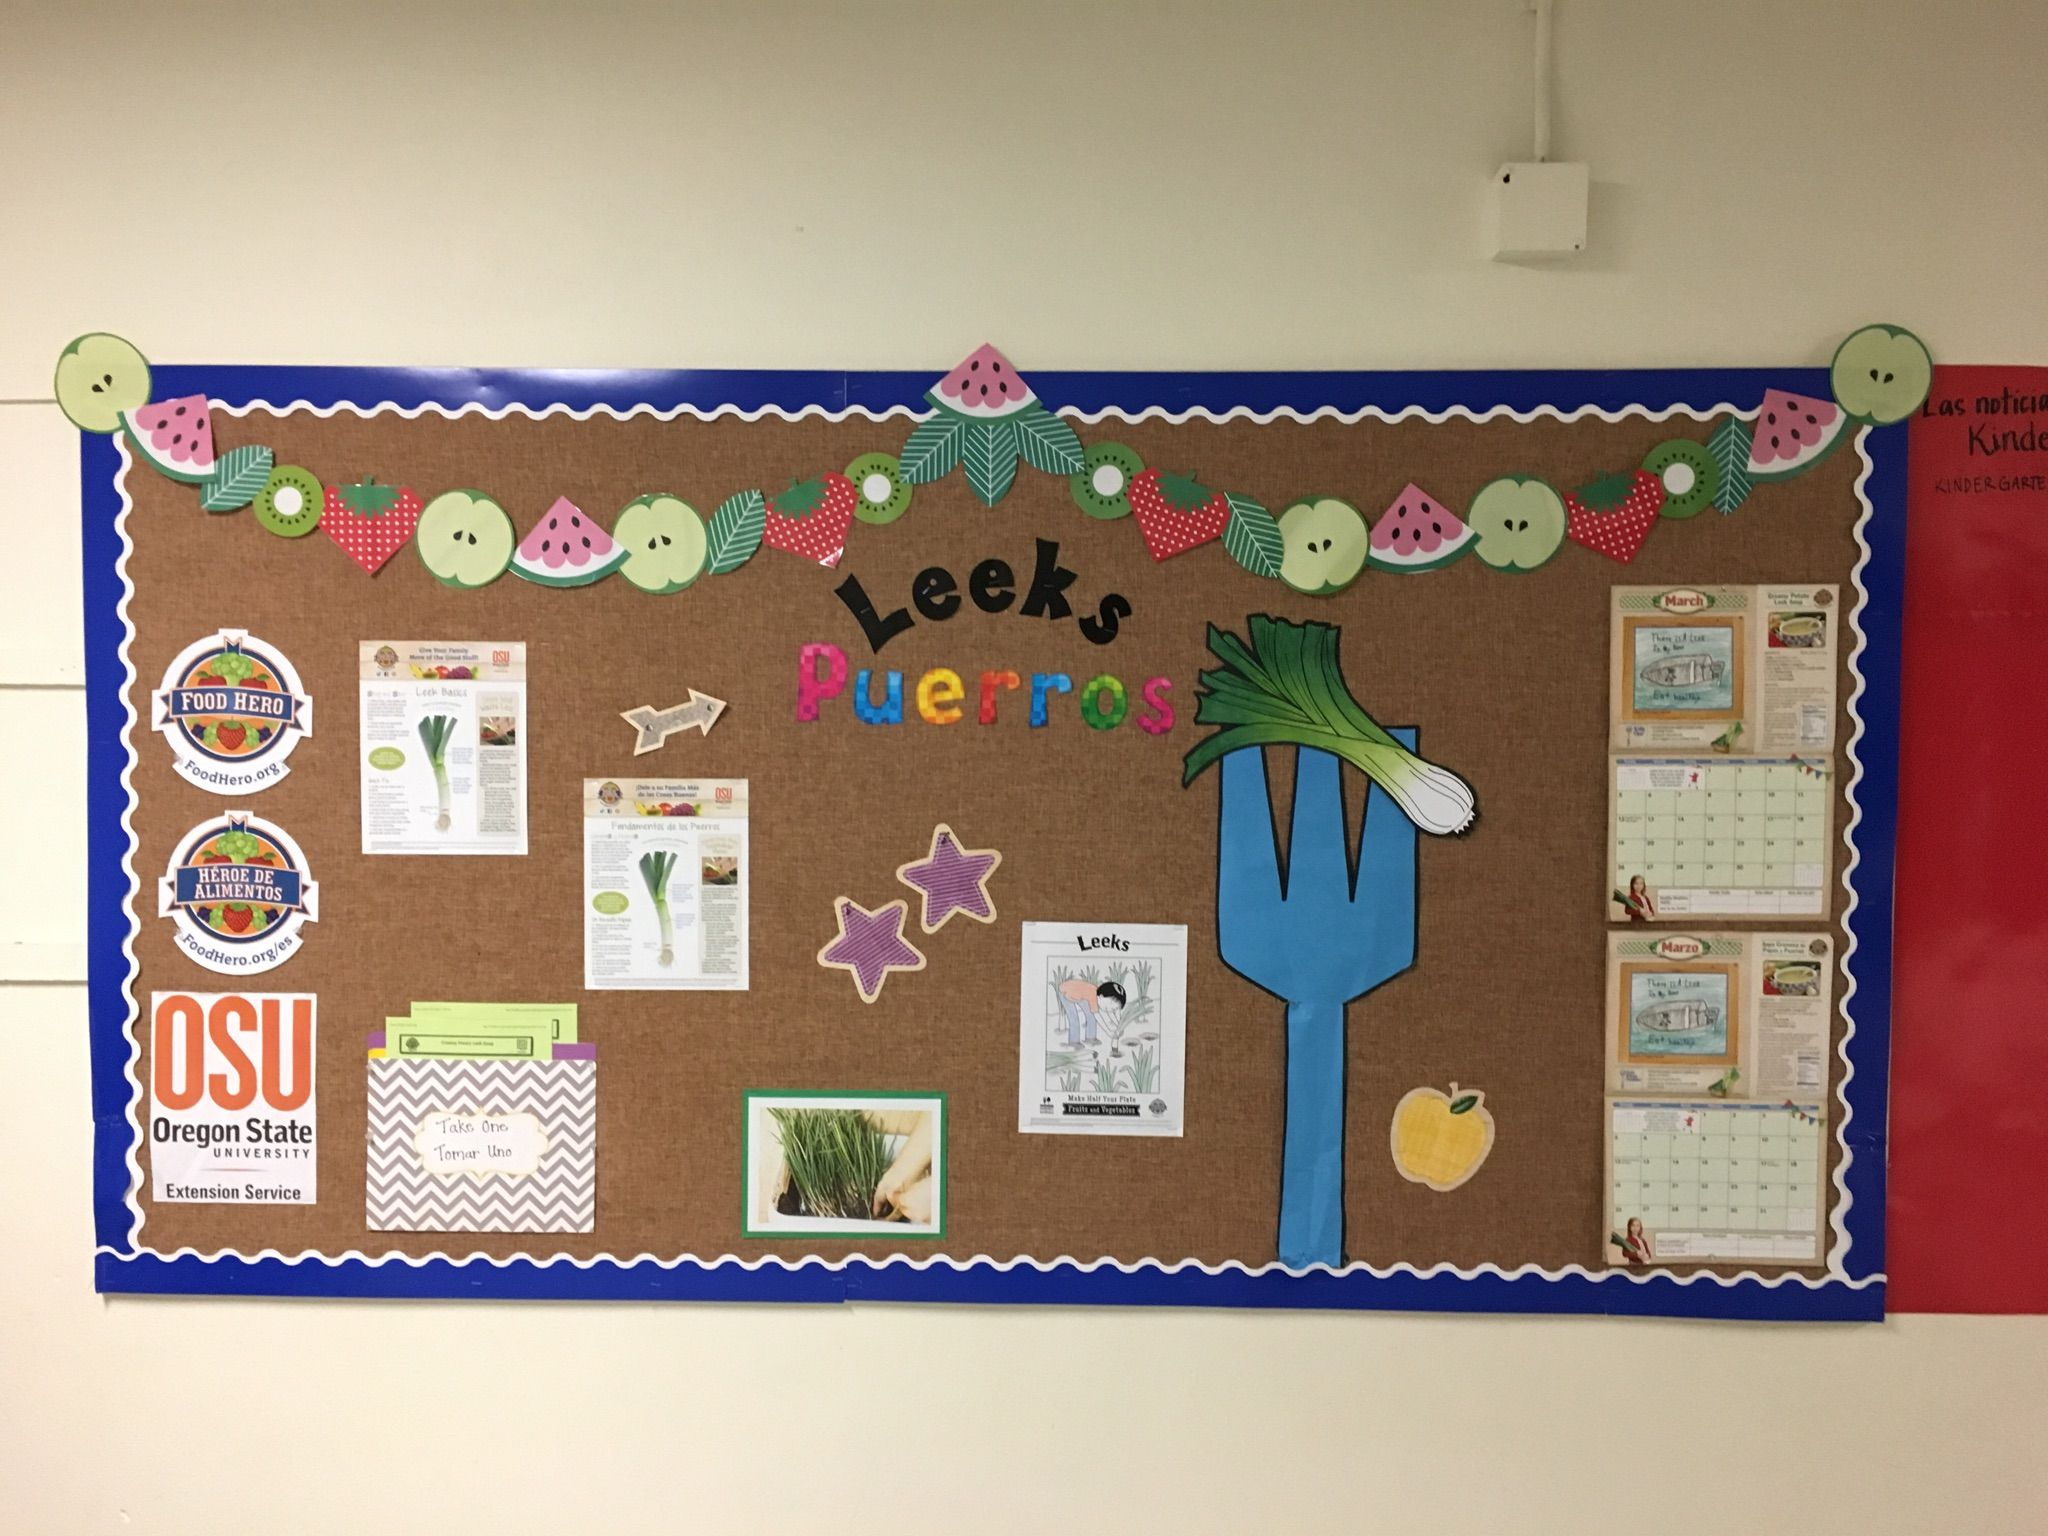 Vegetable leeks bulletin board. #beafoodhero